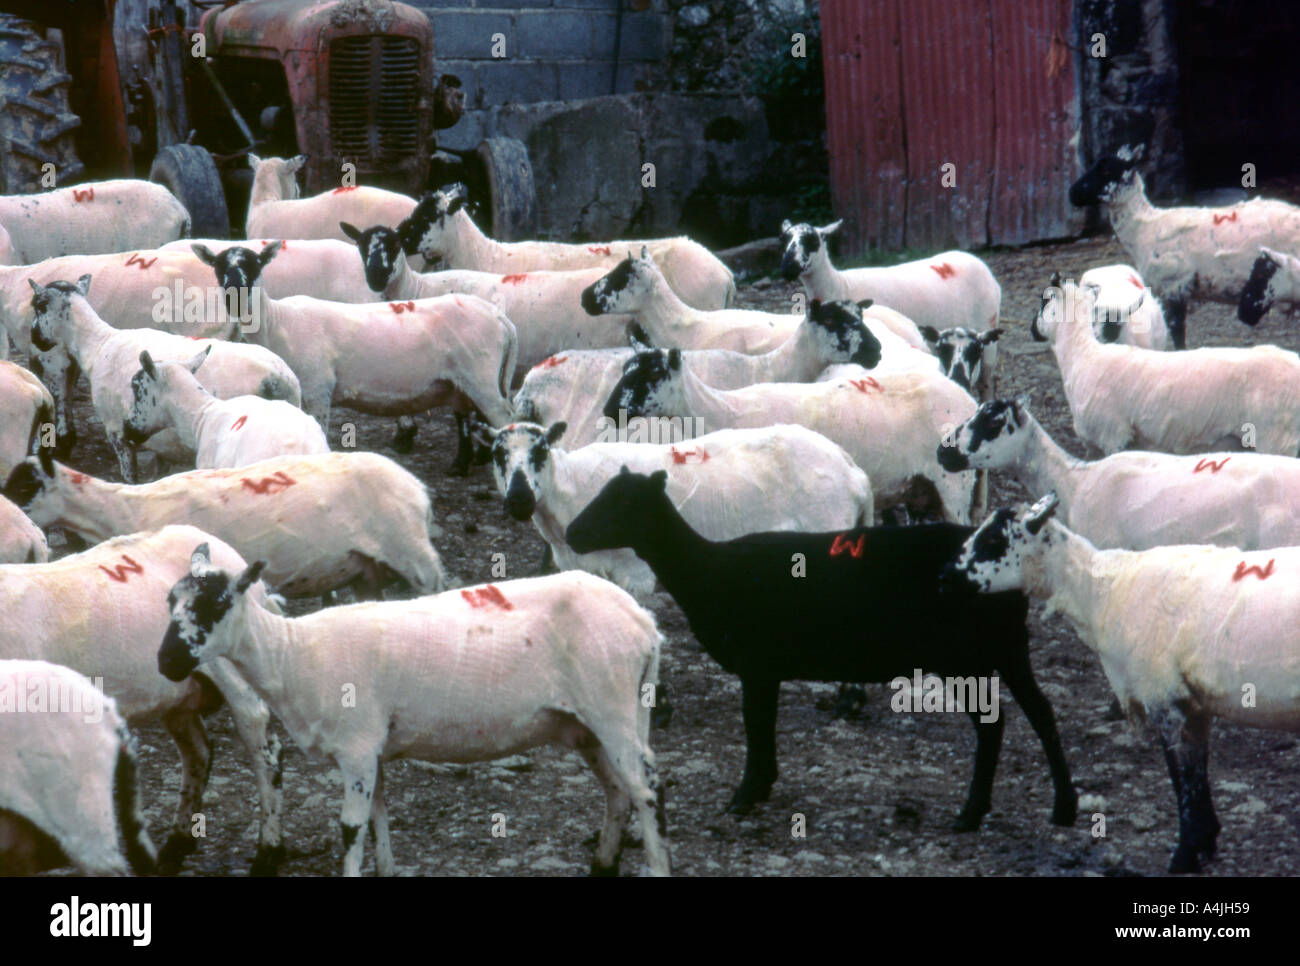 Black sheep standing among white sheep with red branding marks in a farmyard after shearing at a Welsh farm in Carmarthenshire Wales UK - Stock Image